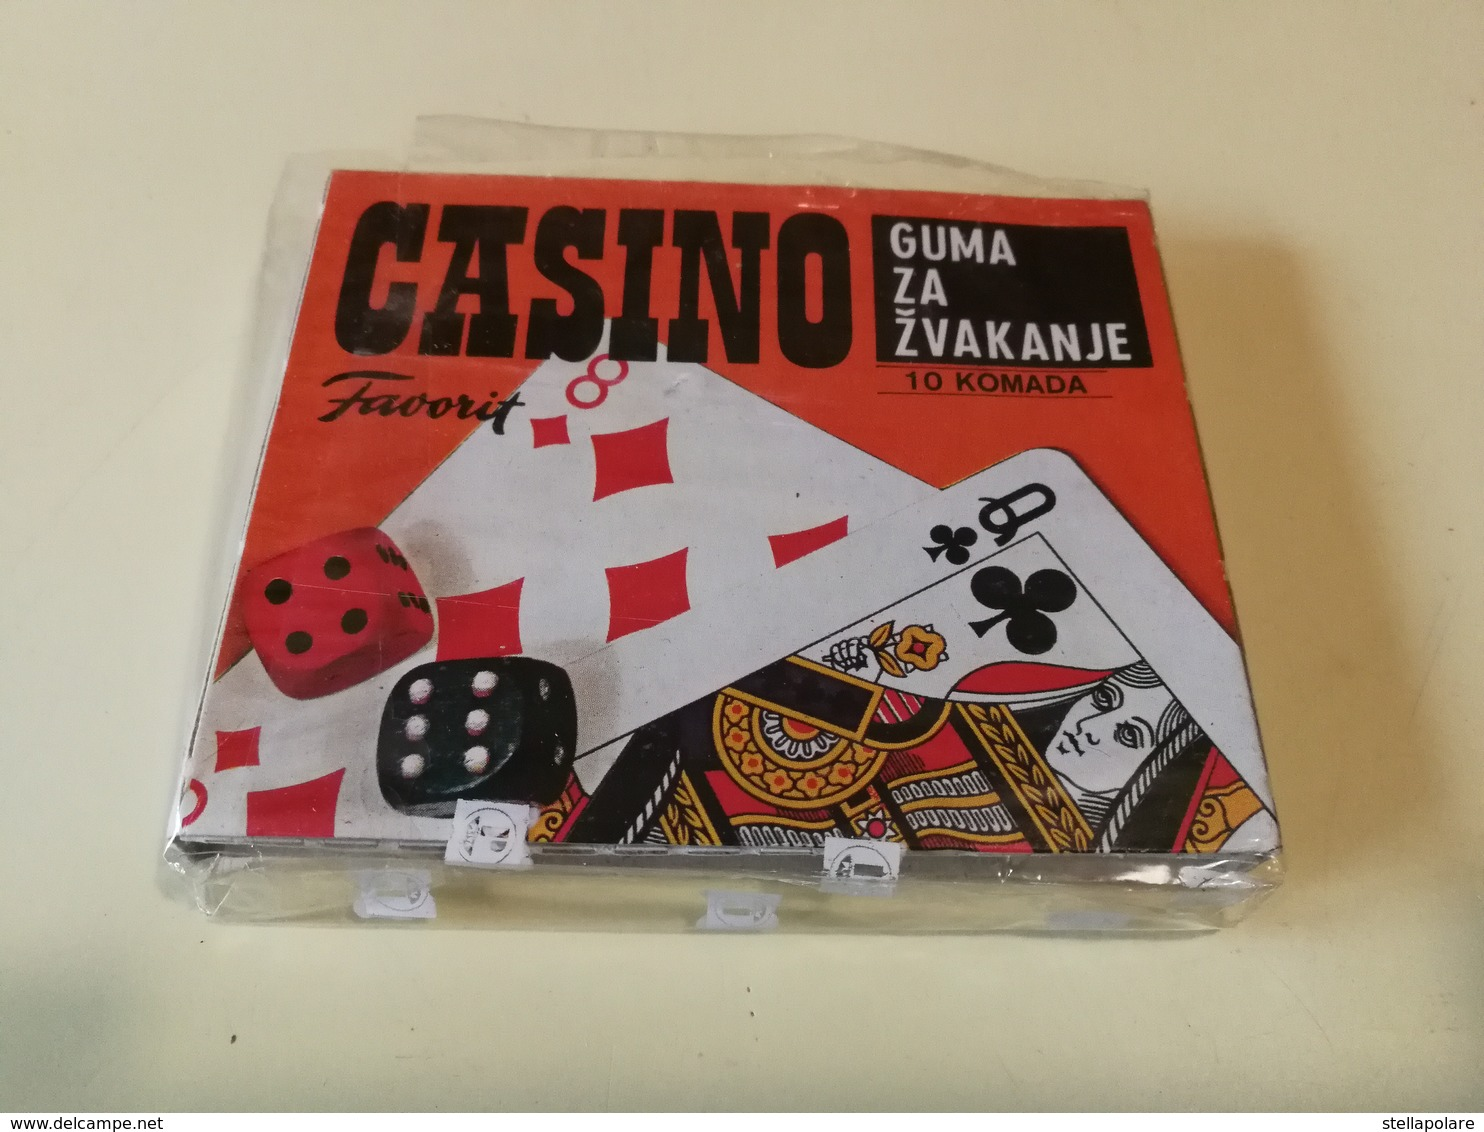 CASINO FAVORIT BUBBLE GUM VINTAGE PACKET YUGOSLAVIA ZVAKE - Other Collections